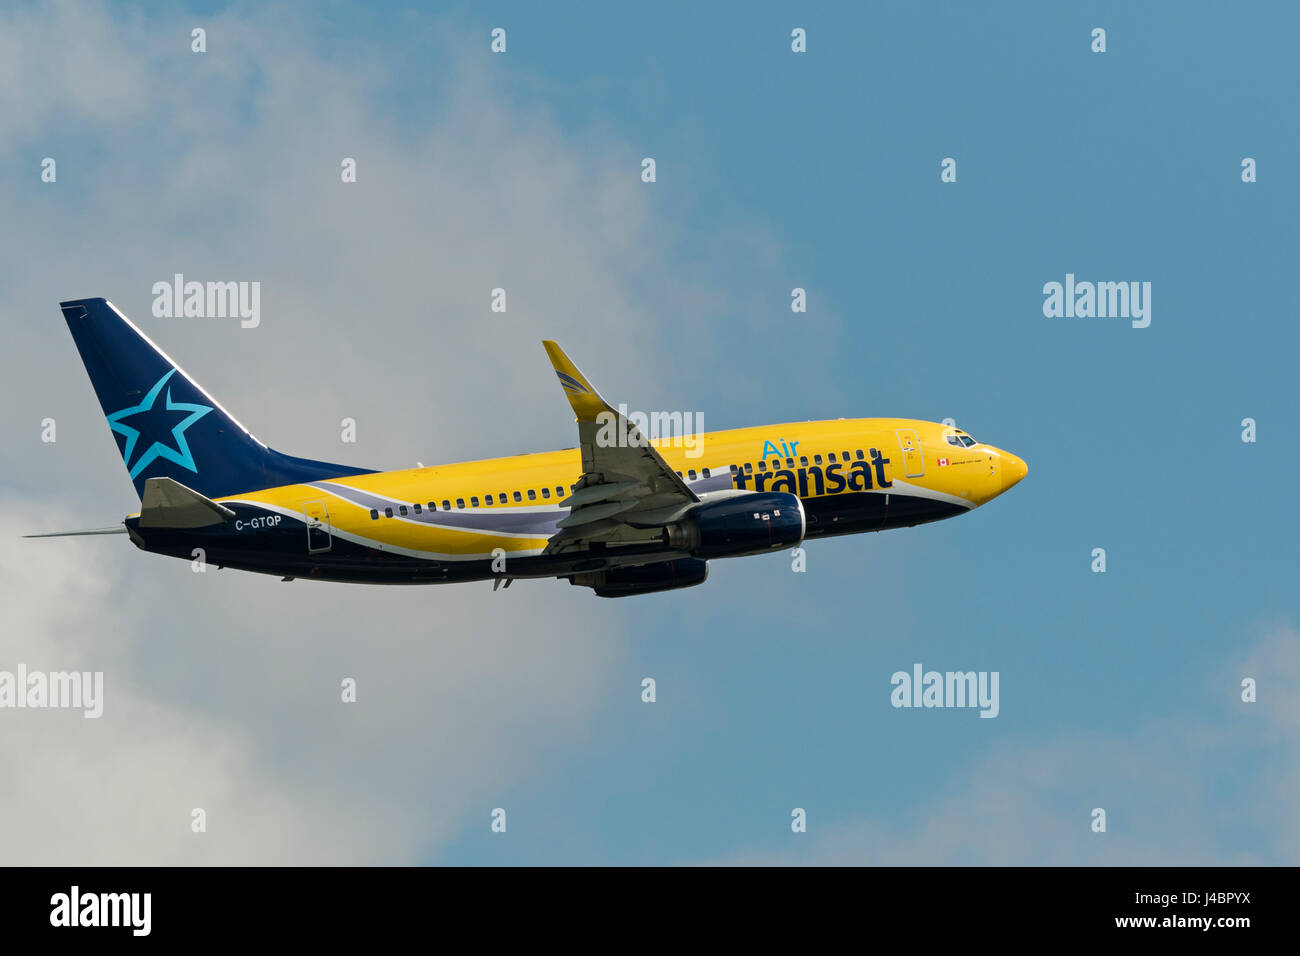 Air Transat plane airplane Boeing 737 airborne after take taking off  Vancouver International Airport - Stock Image